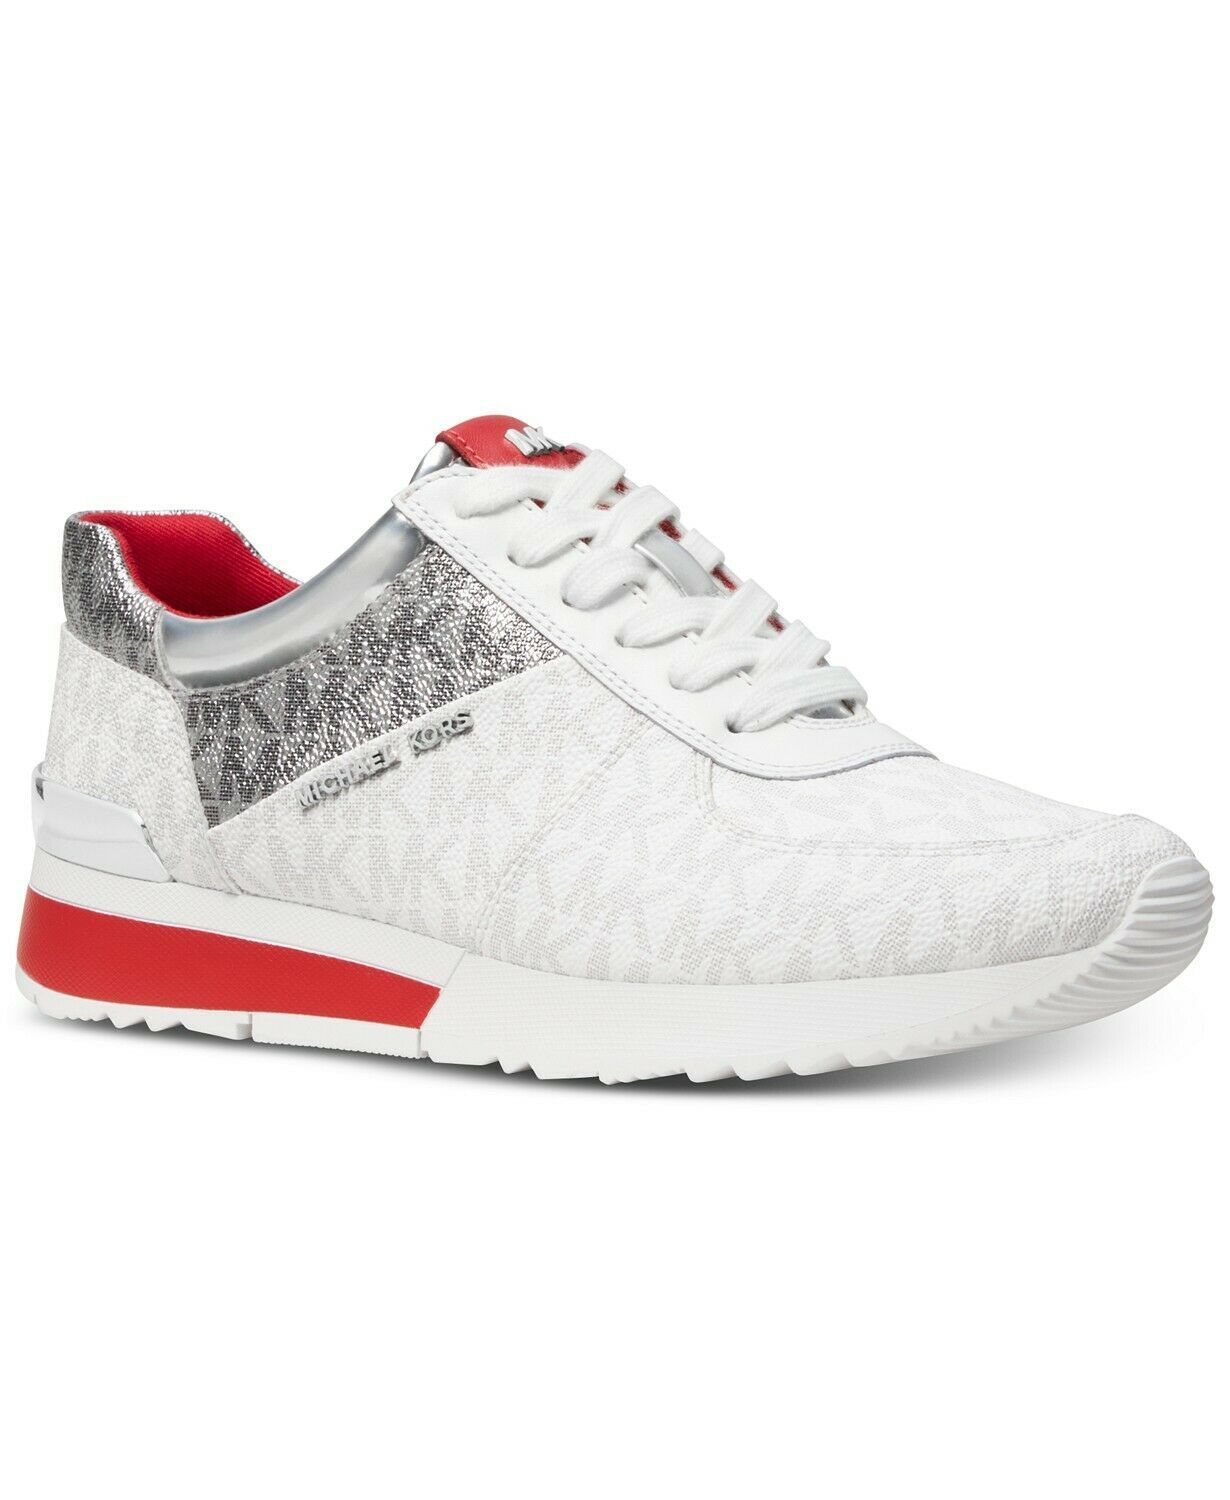 Michael Kors MK Women's Allie Trainer Leather Sneakers Shoes Red/White